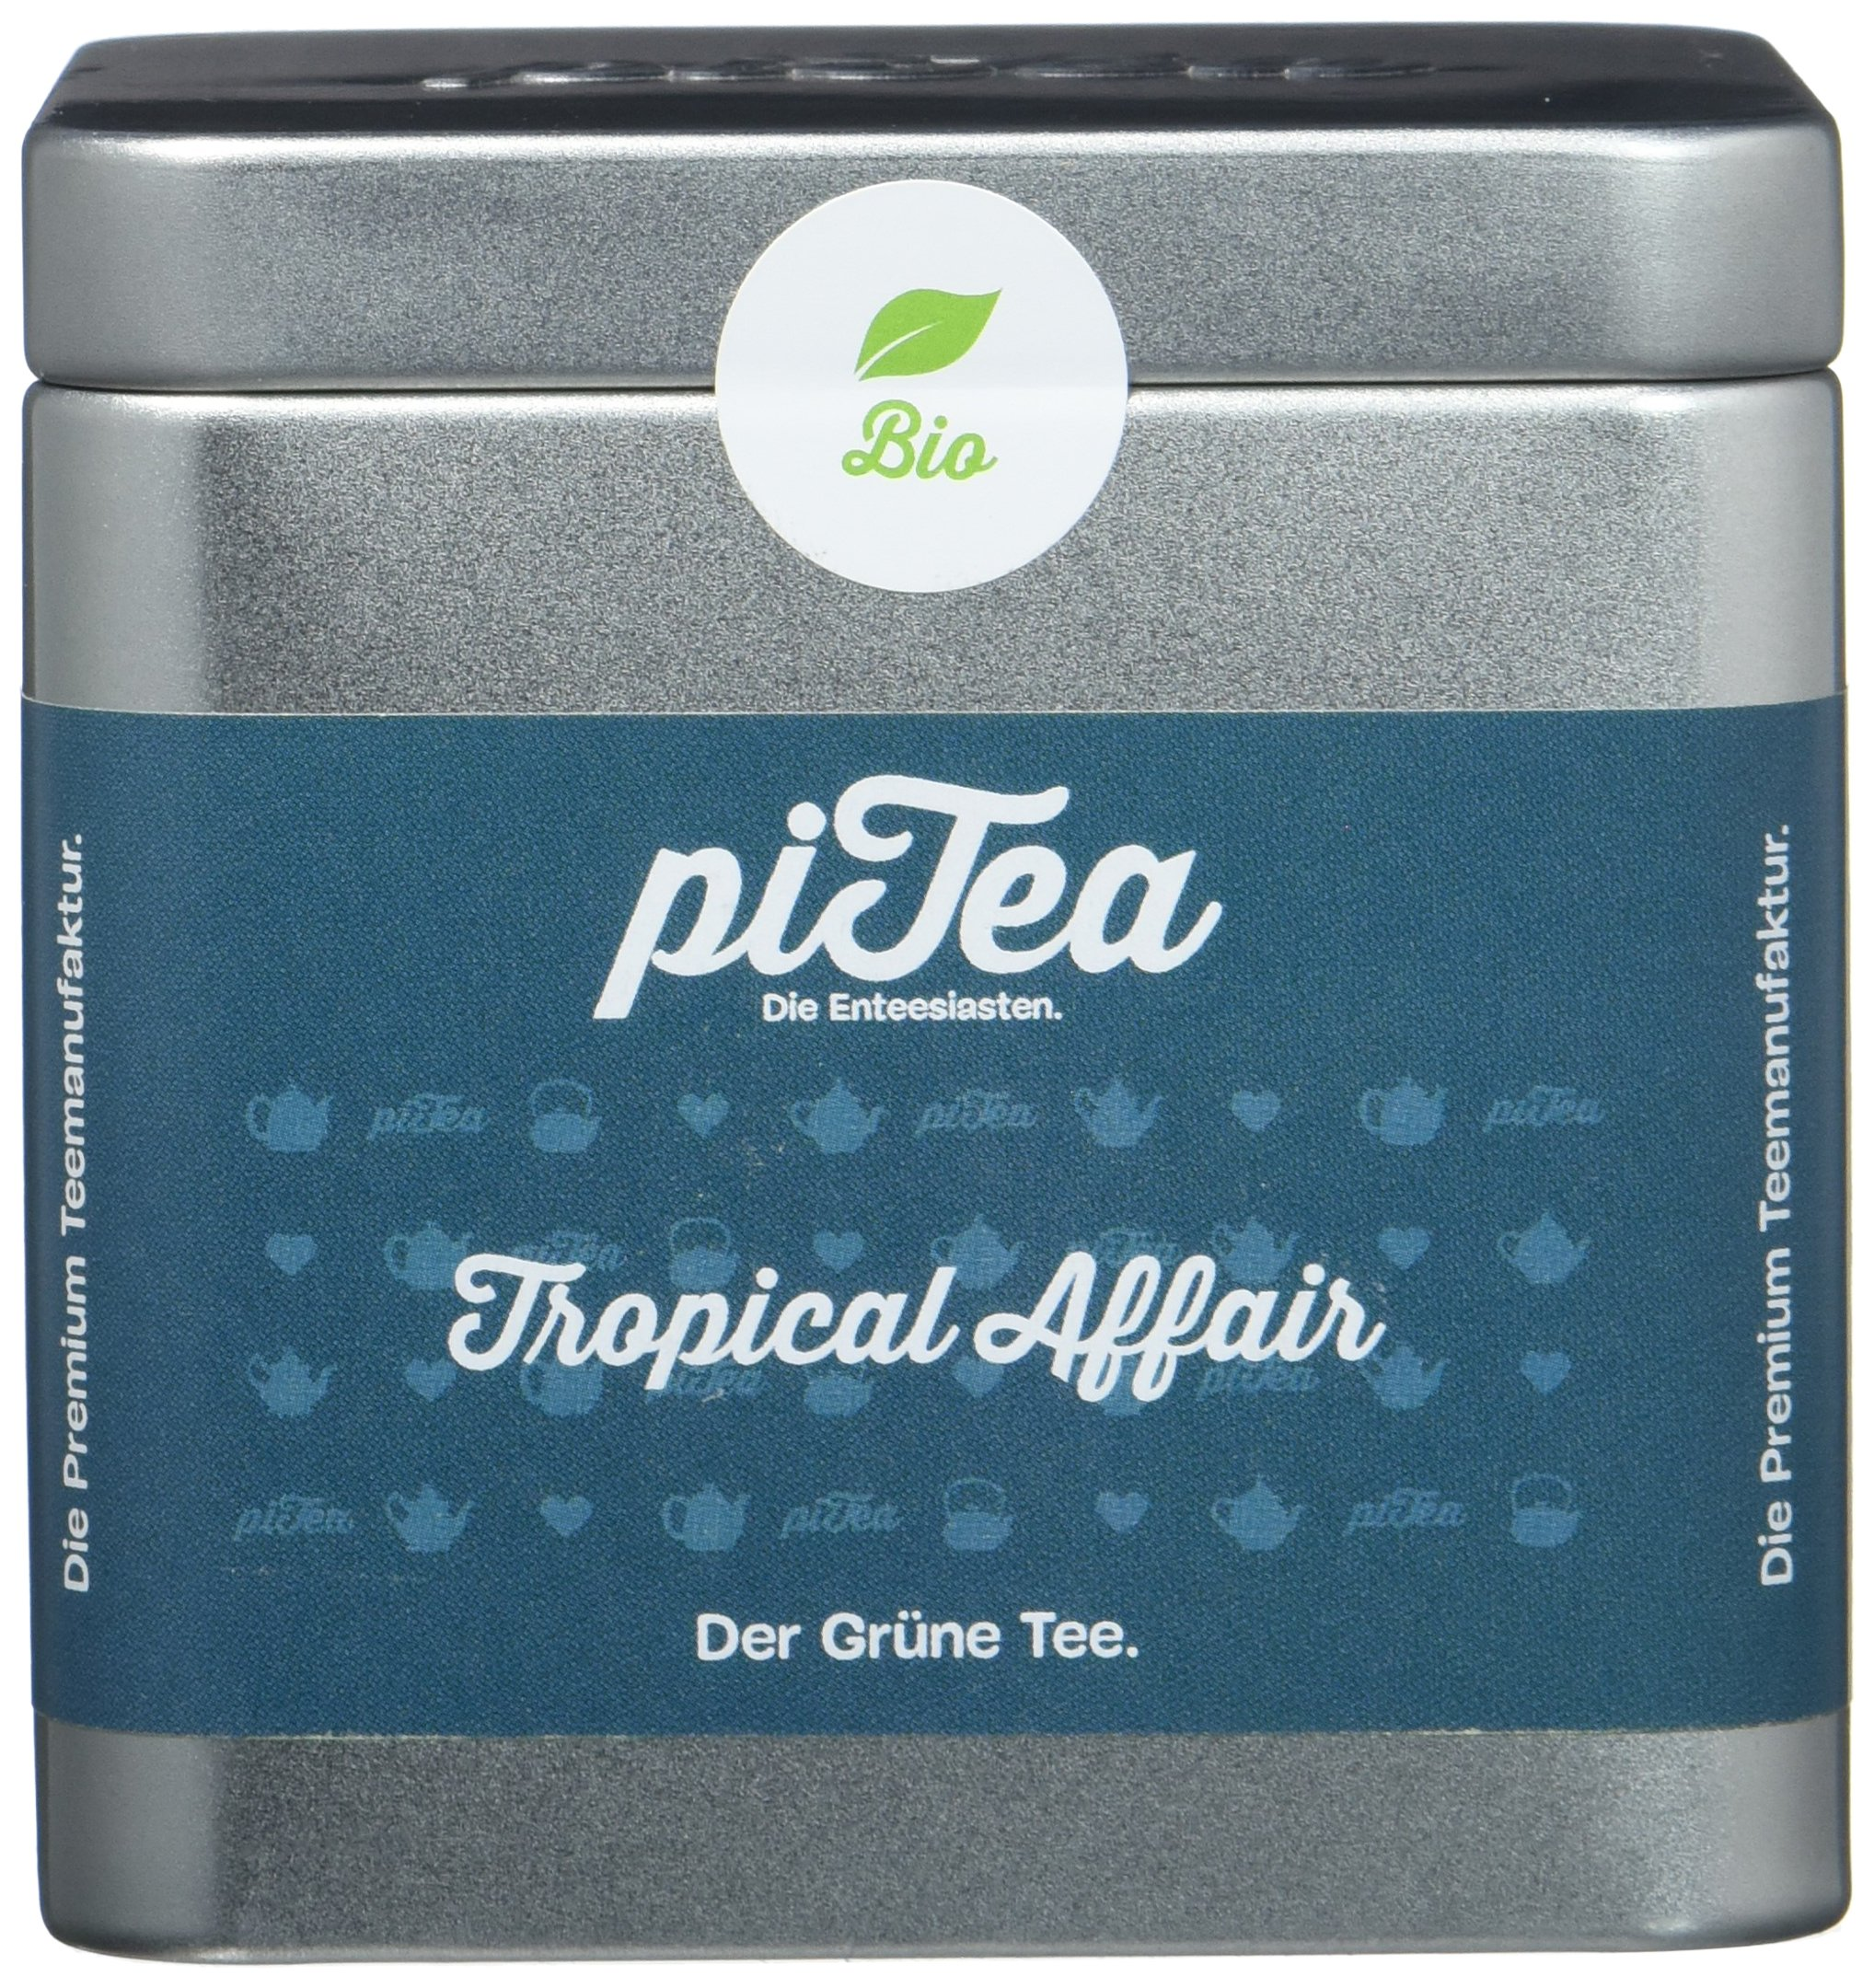 Pi-Tea-Tropical-Affair-Dose-Grner-Tee-Bio-Teestation-natrlich-und-vegan-2er-Pack-2-x-75-g